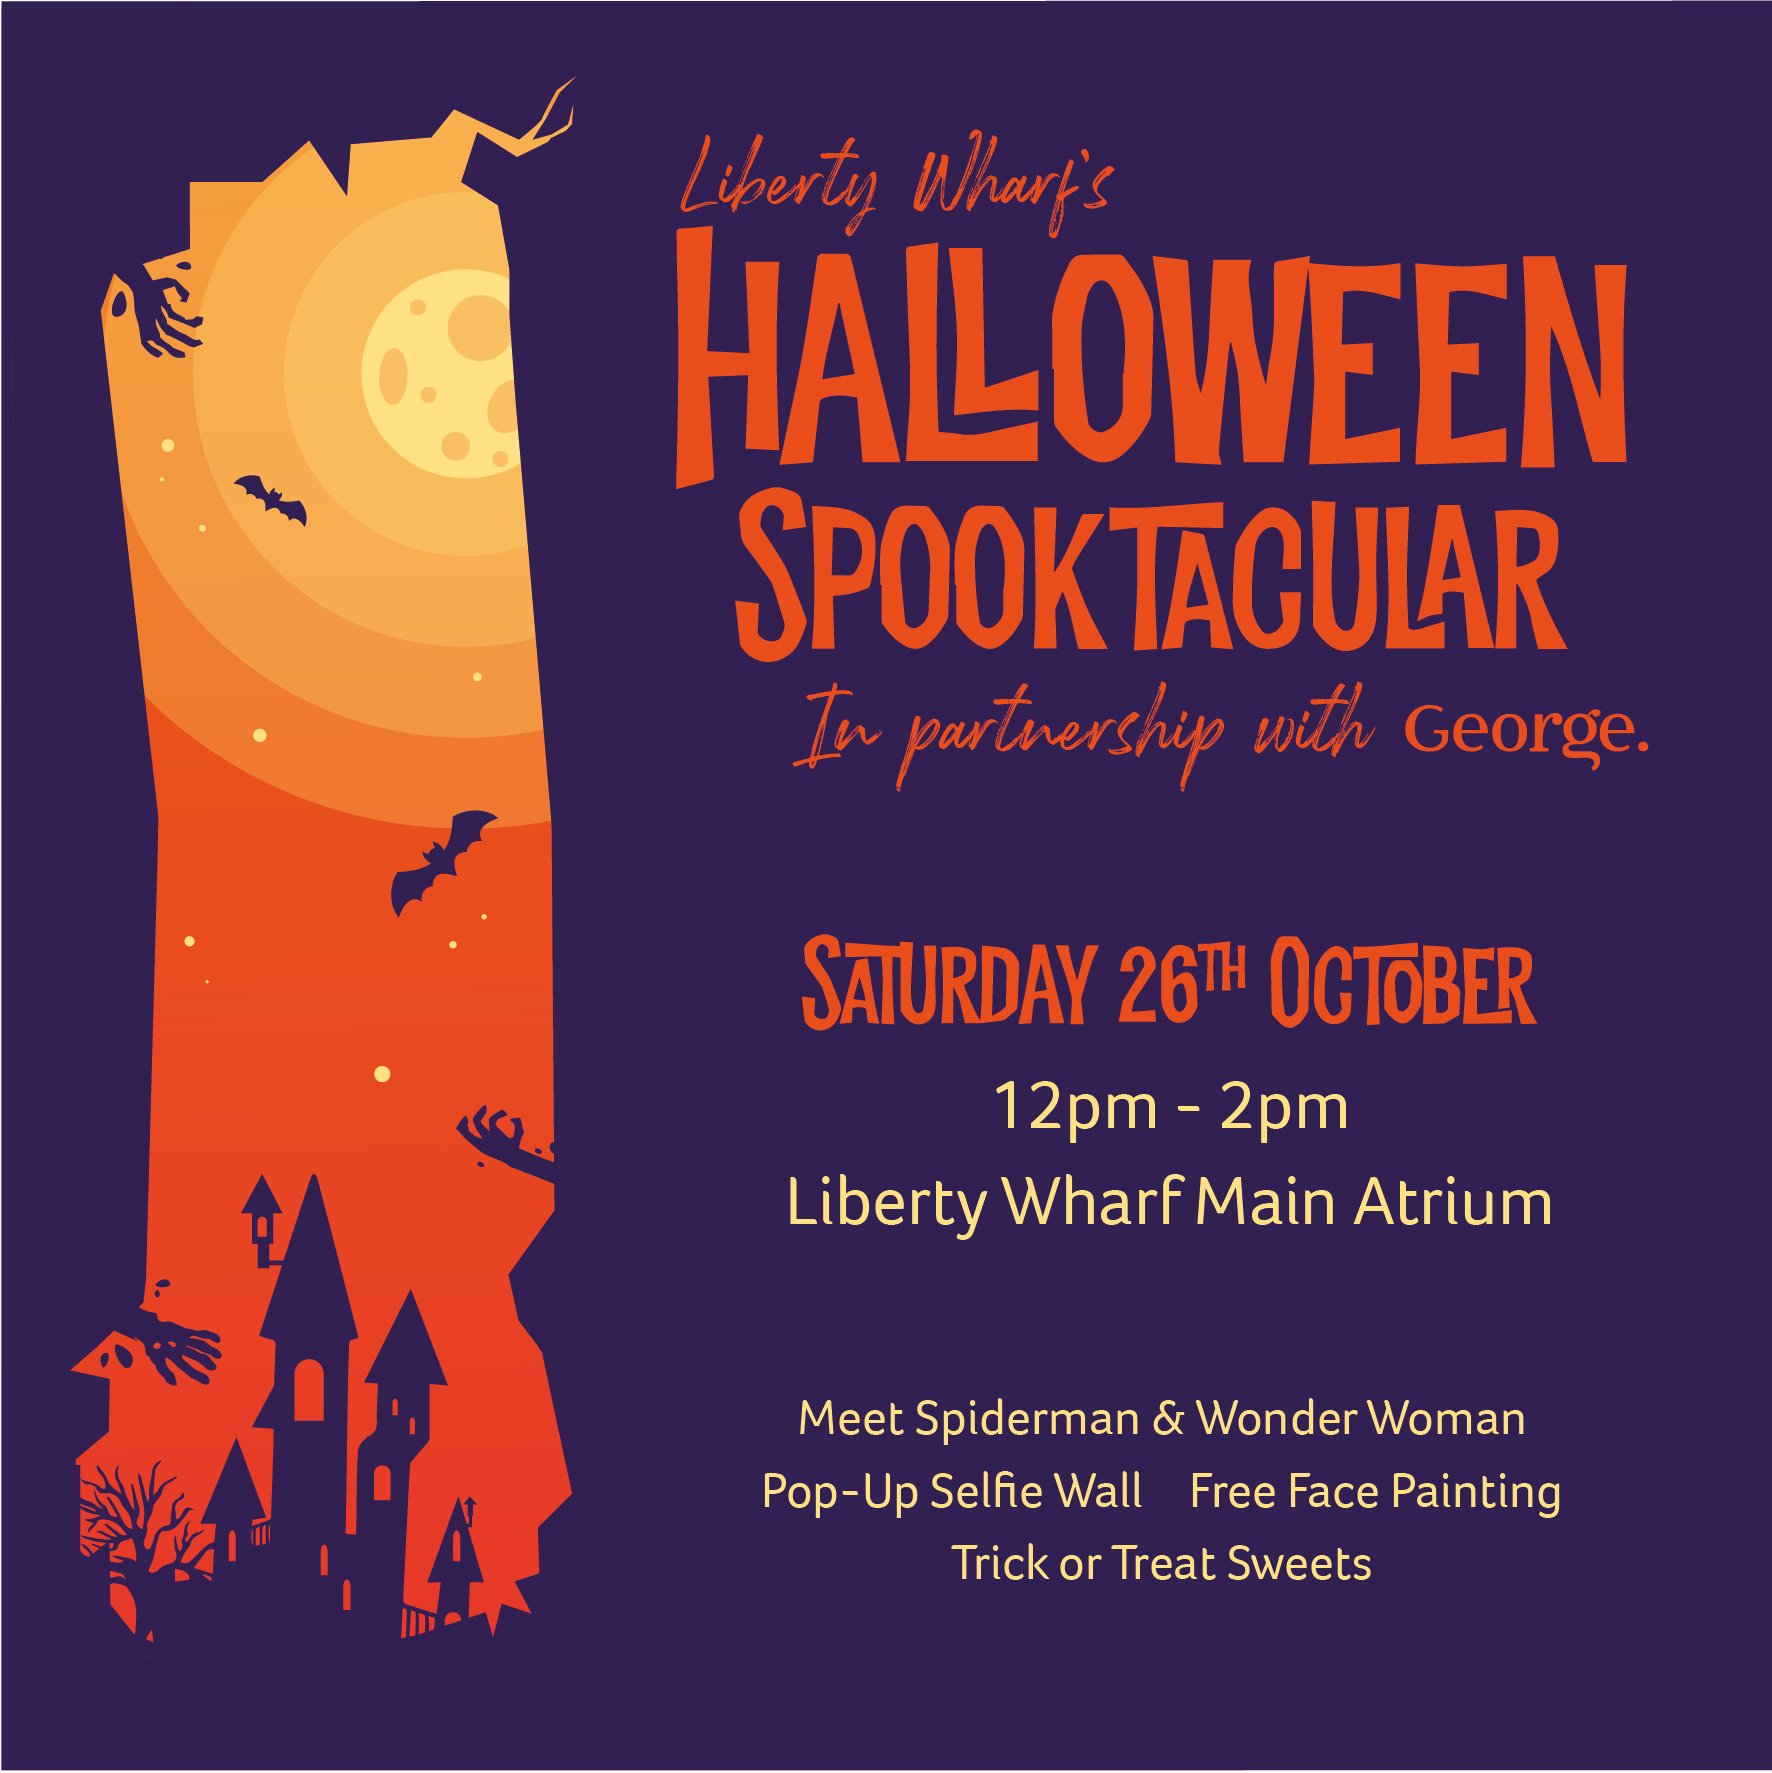 Liberty Wharf Halloween Social Post-01.jpg